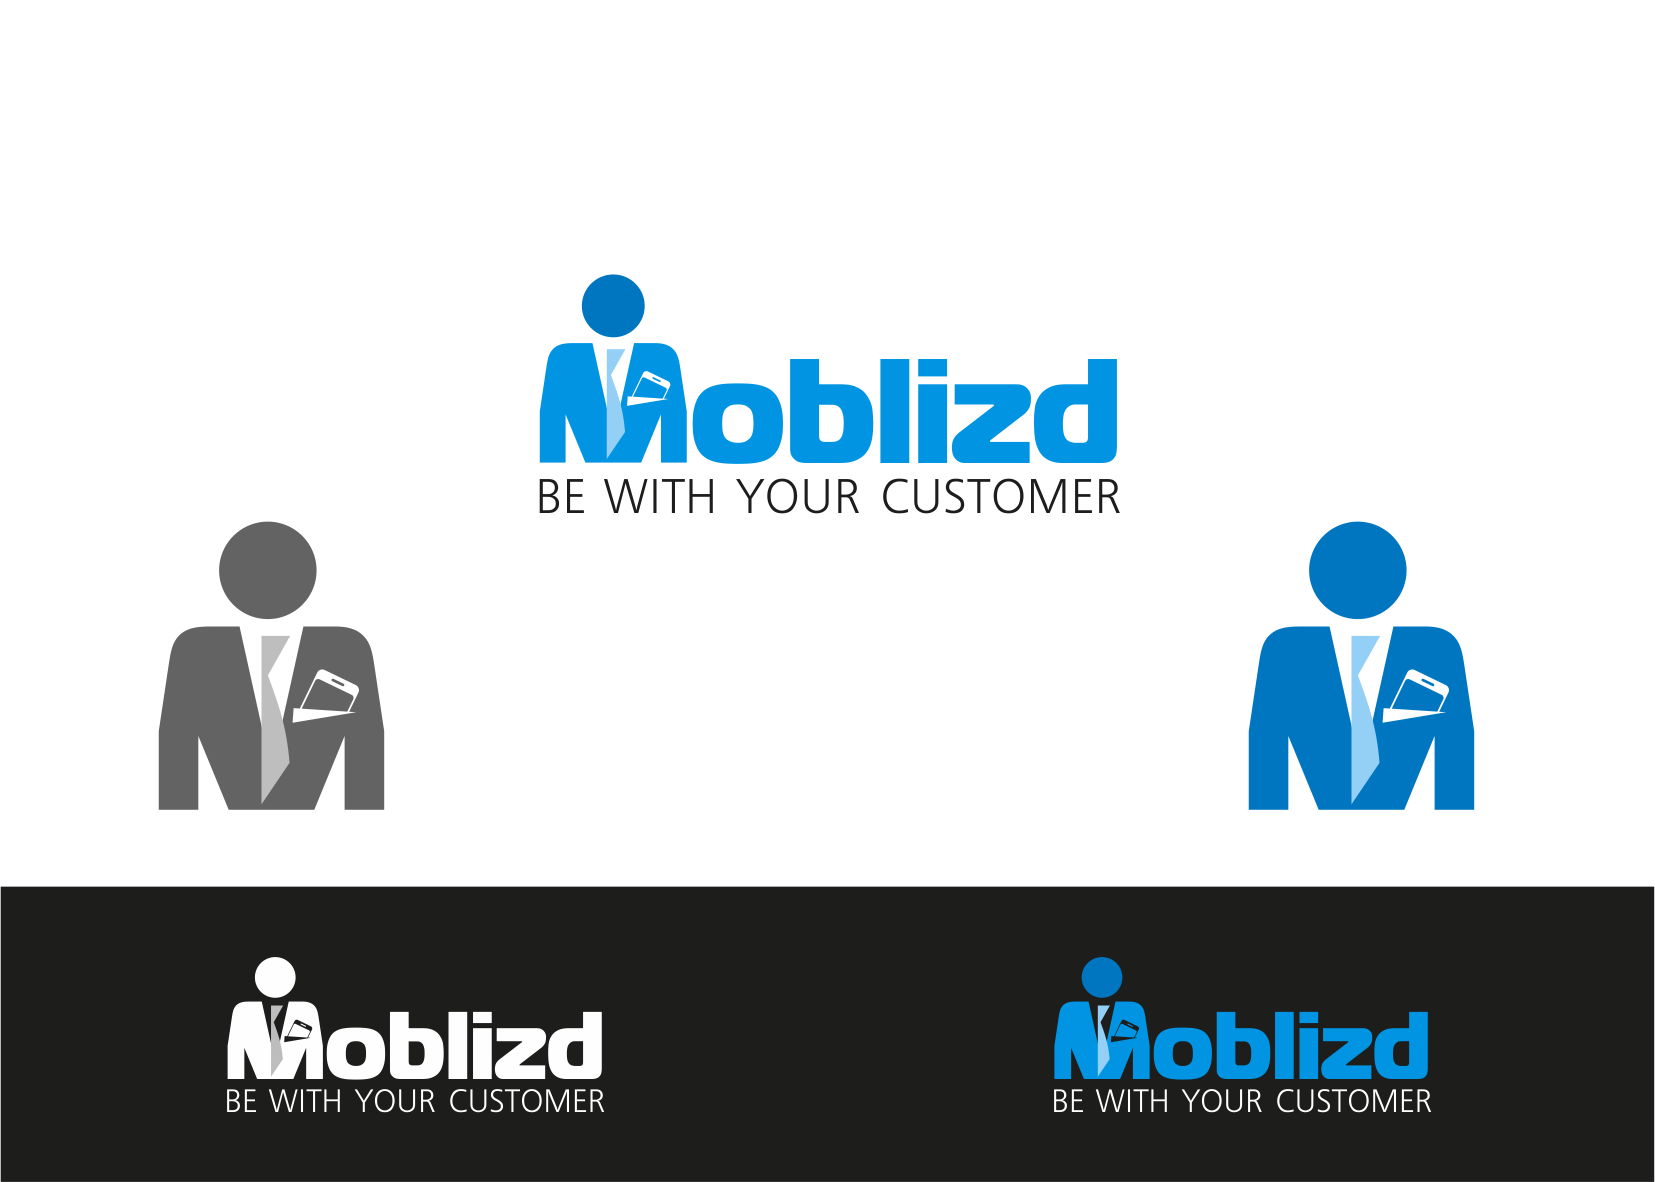 Create the next logo for Moblizd